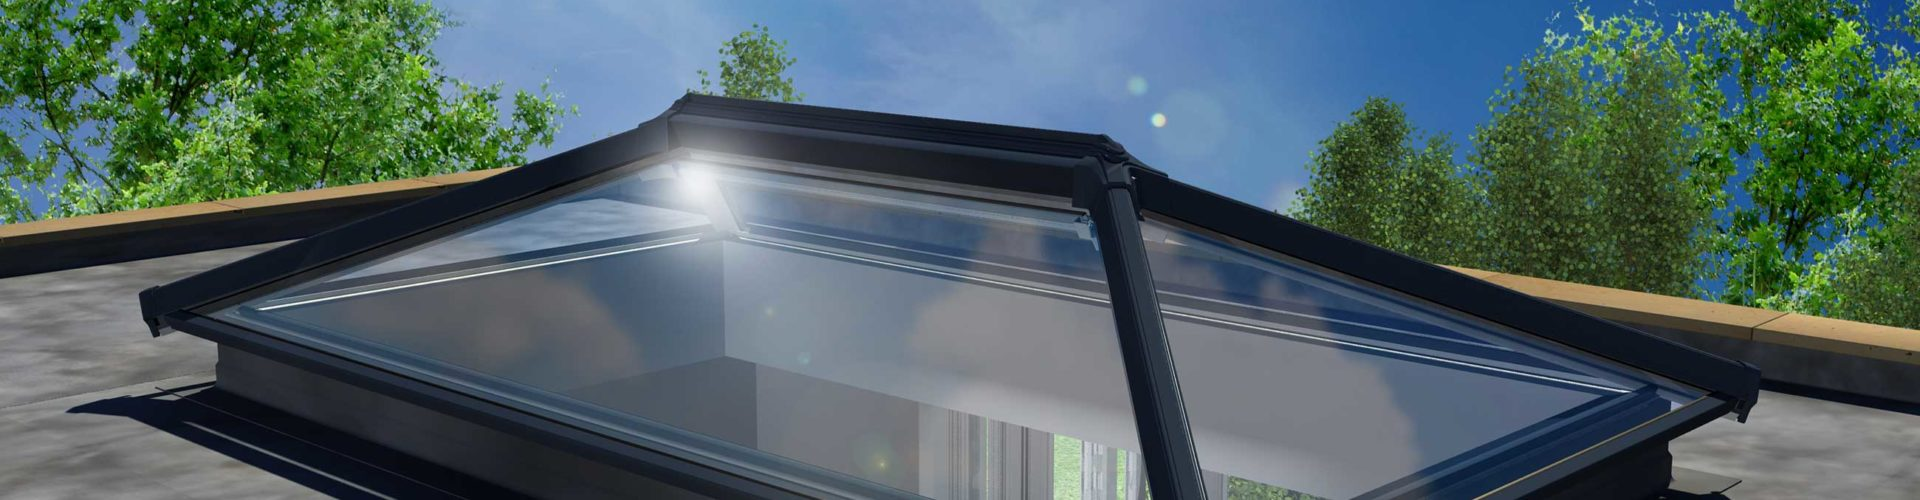 Flat Roof Lanterns, Stevenage